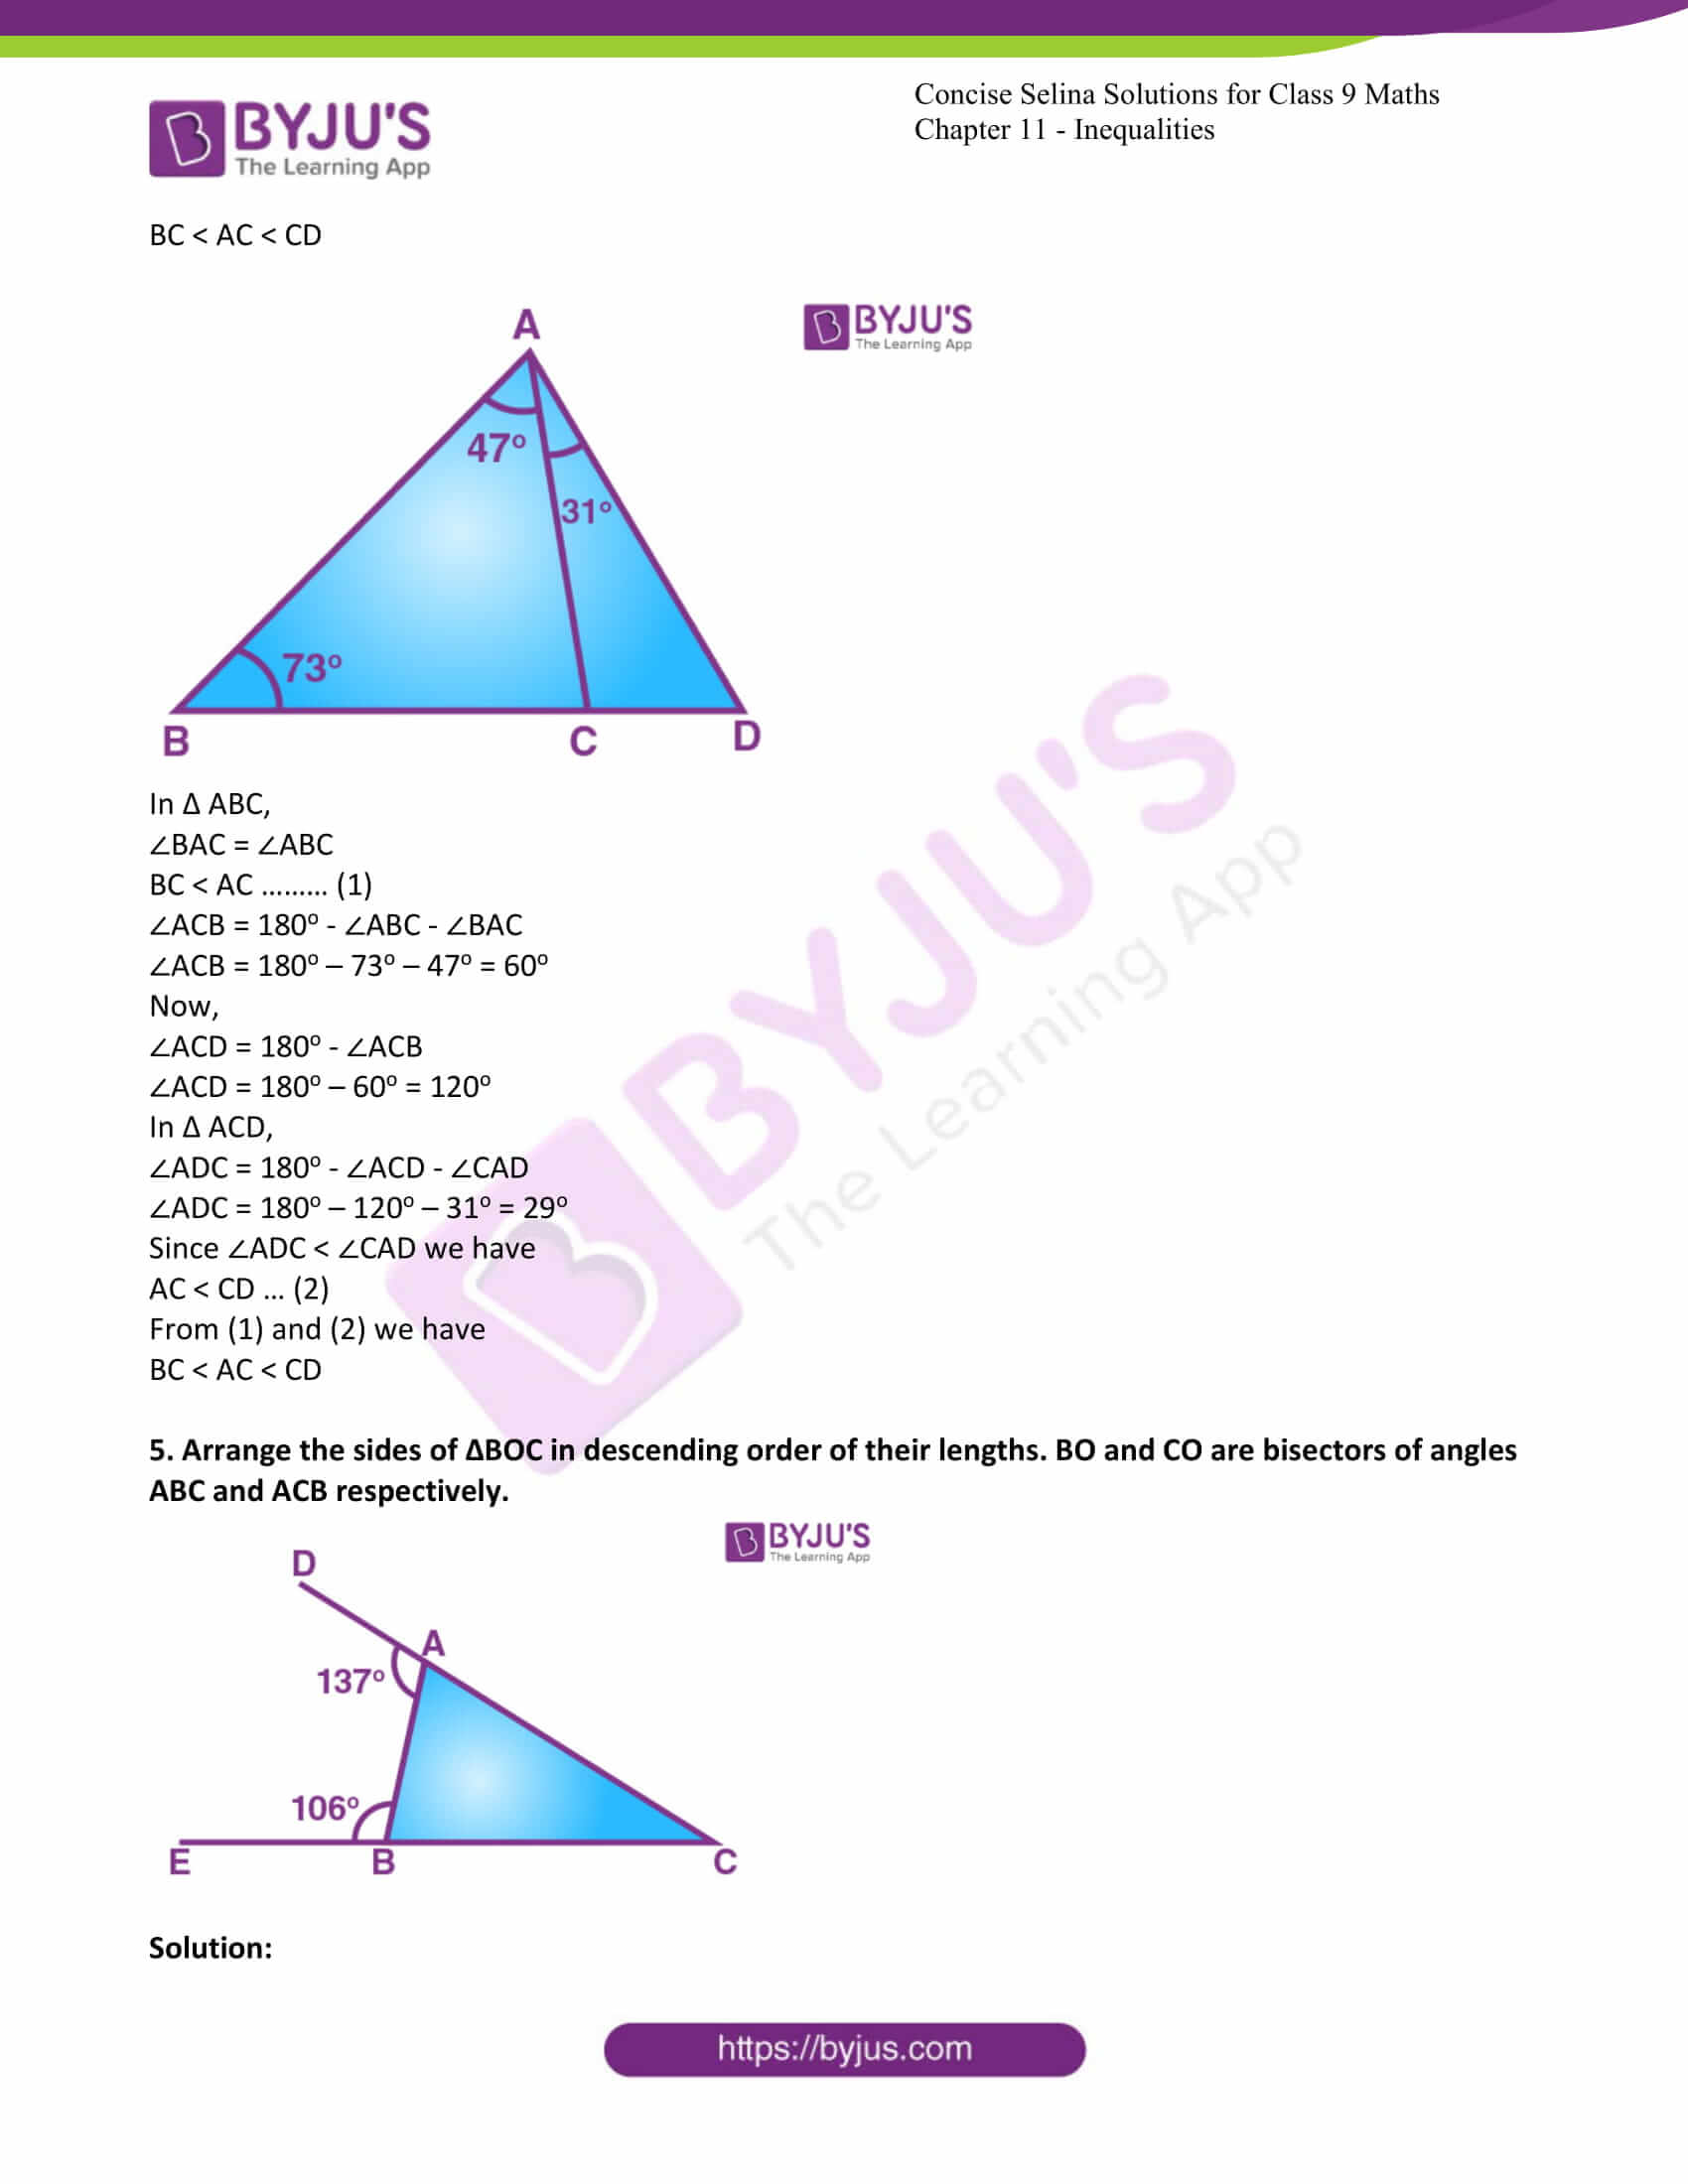 icse class 9 maths may10 selina solutions chapter 11 inequalities 04